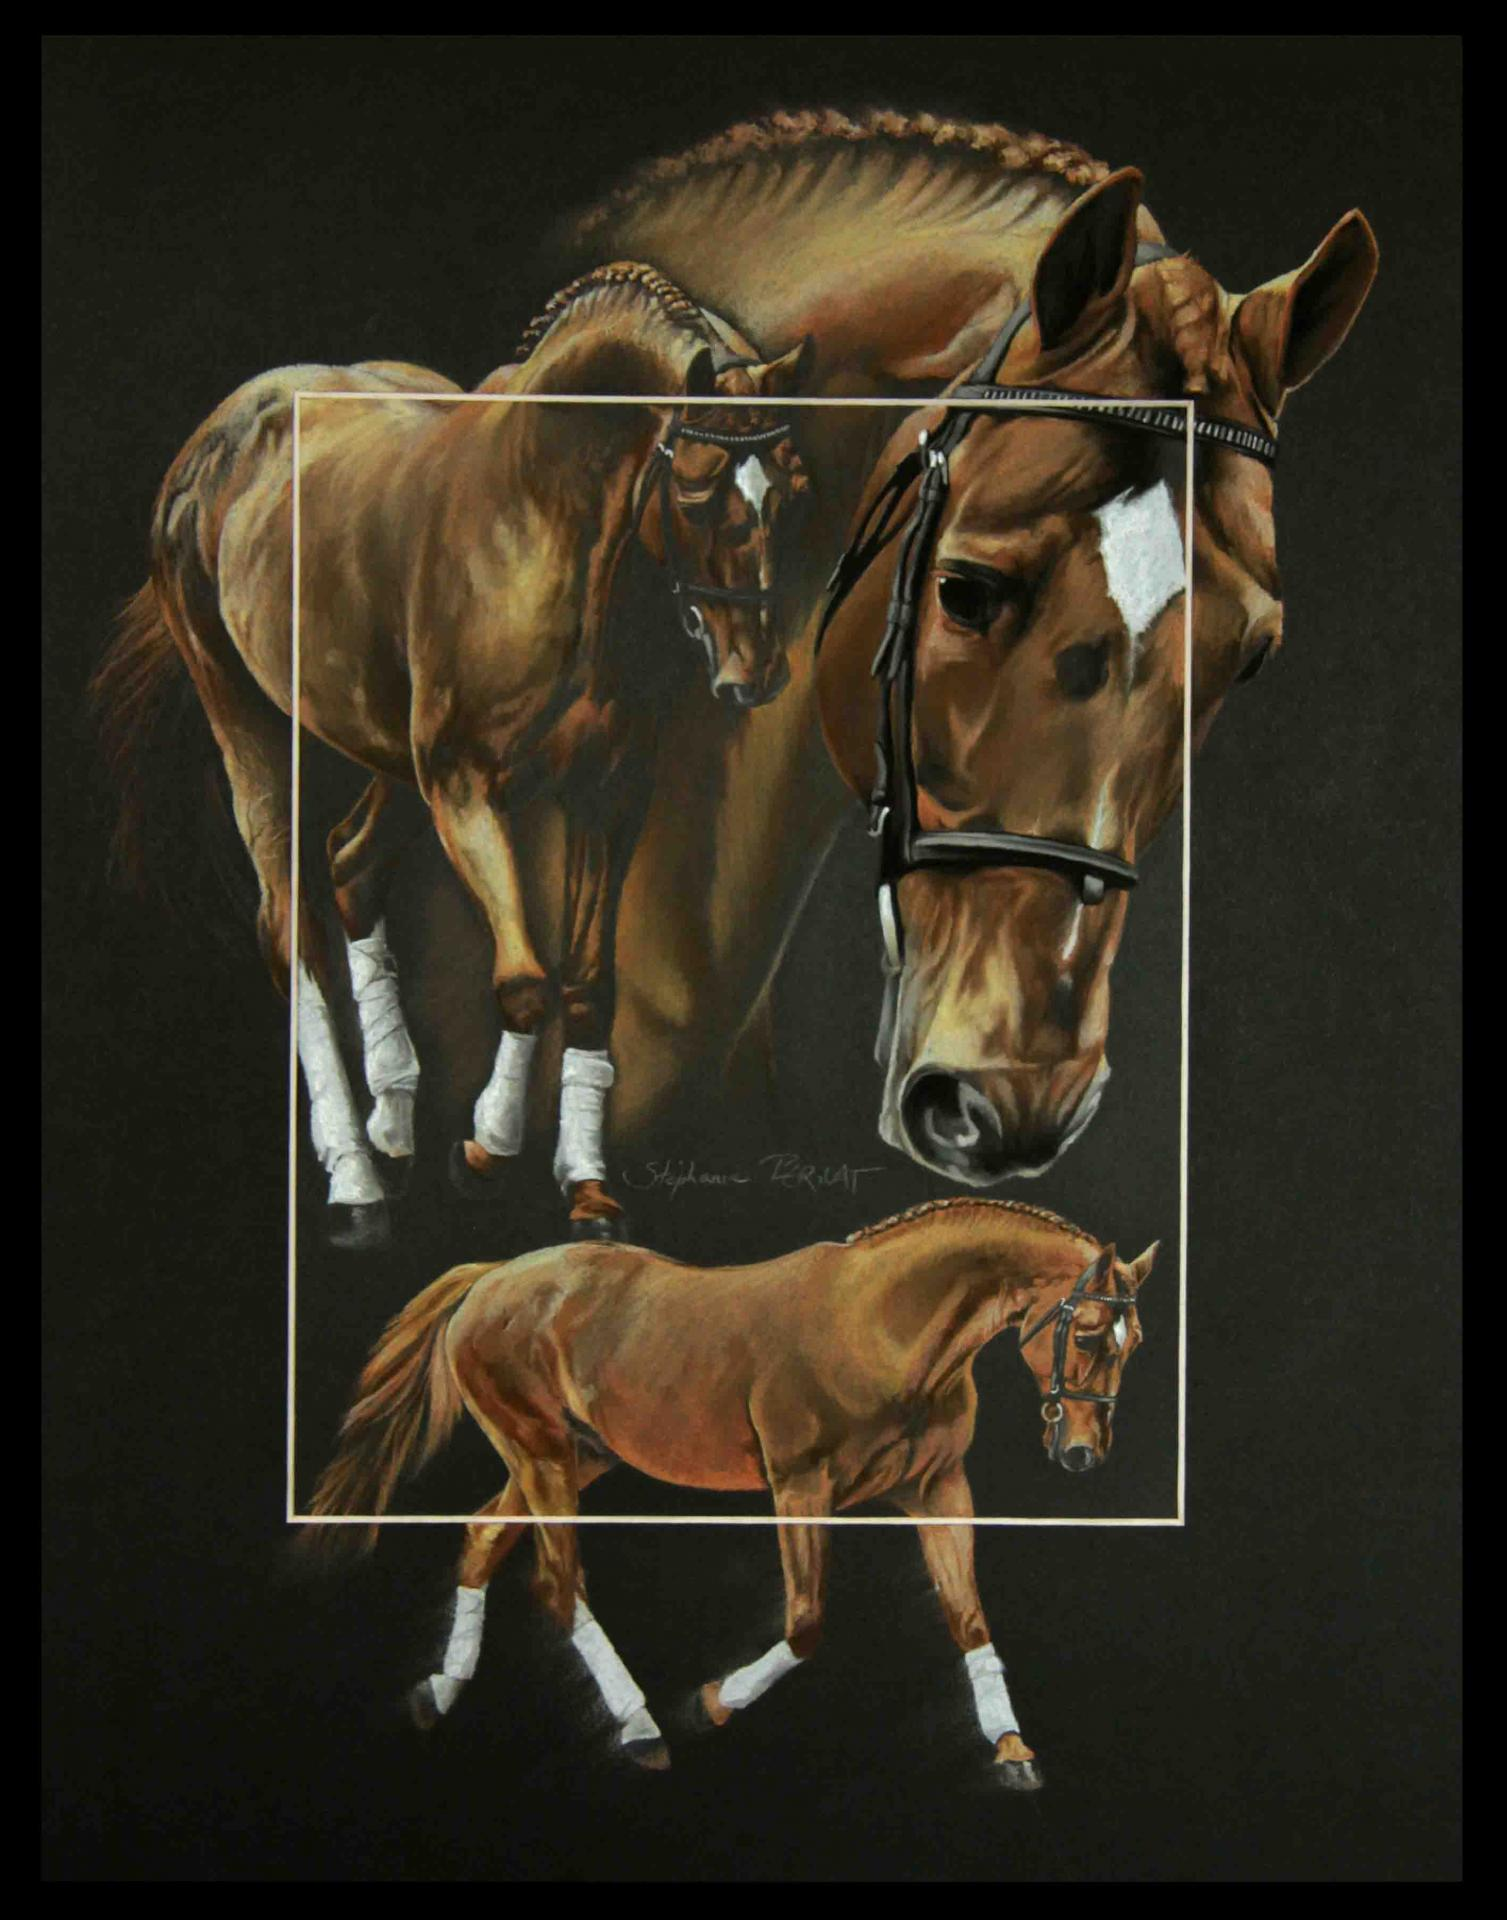 GOLDFEVER, ETALON PRIVE HANOVRIEN (private hanoverian stallion) - pastel sec (soft pastel) - 40x50cm